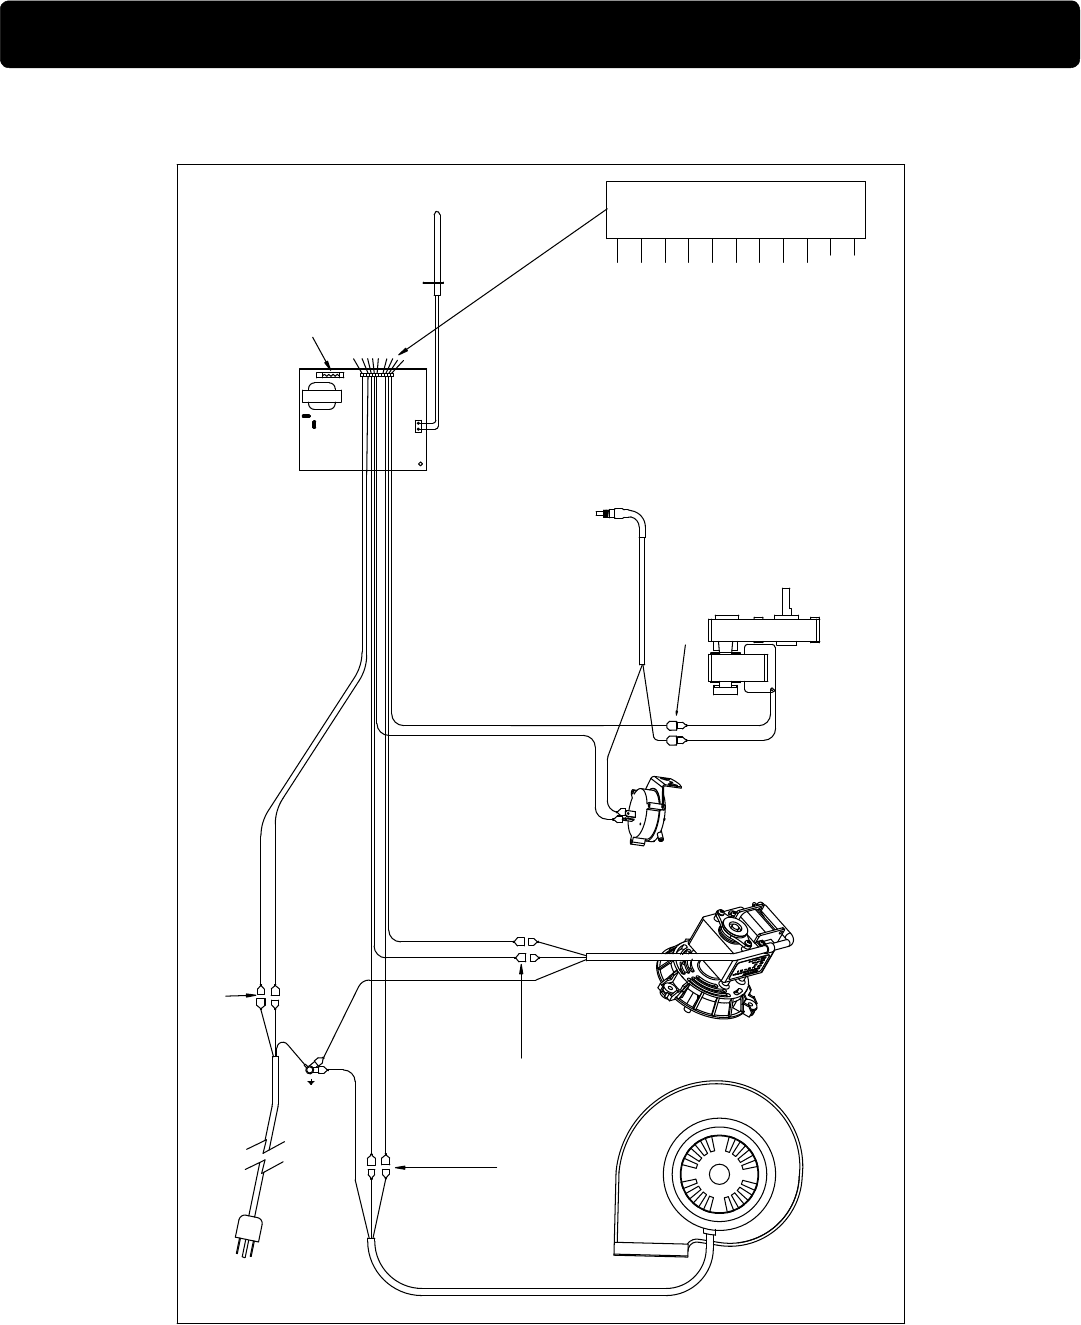 Harman PP38+ wiring diagram